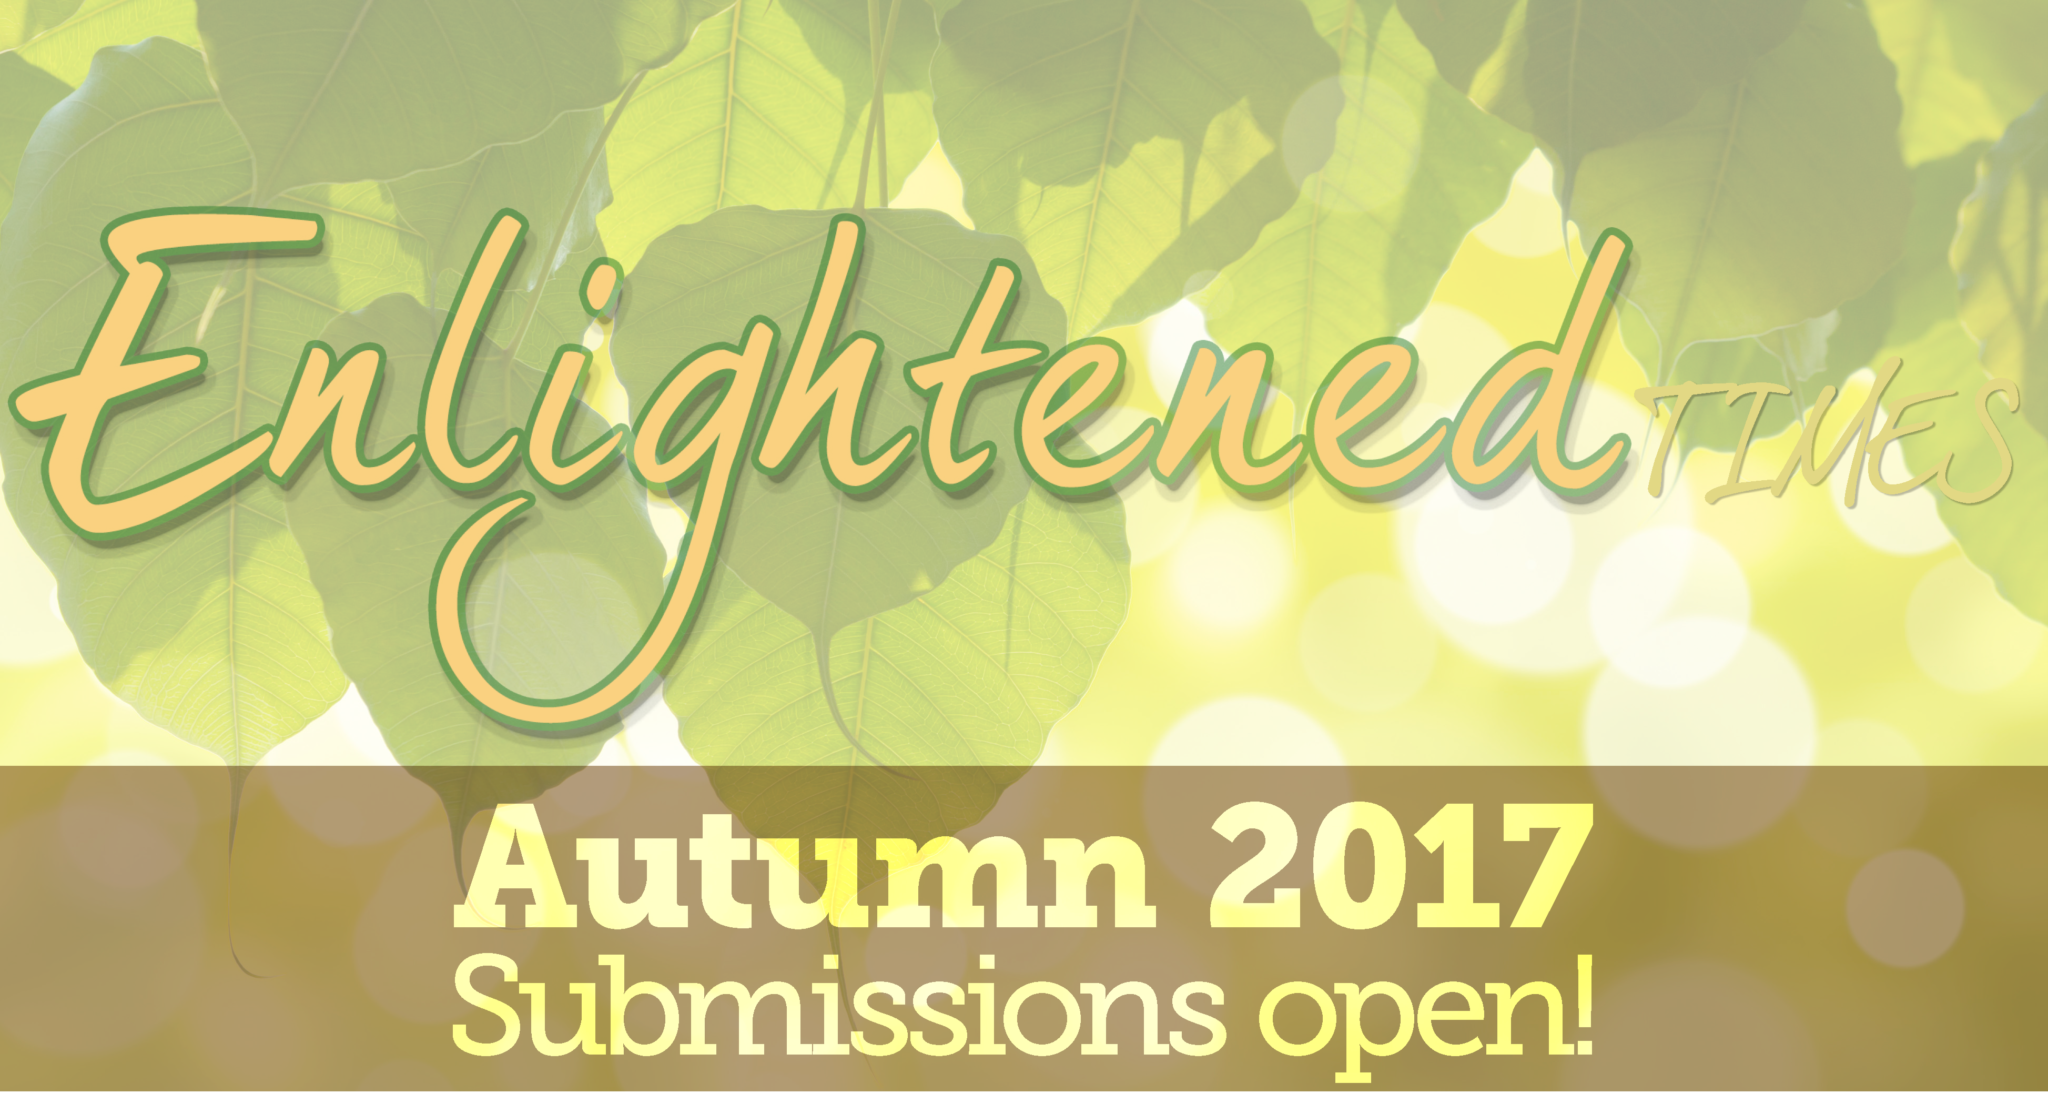 Autumn submissions open